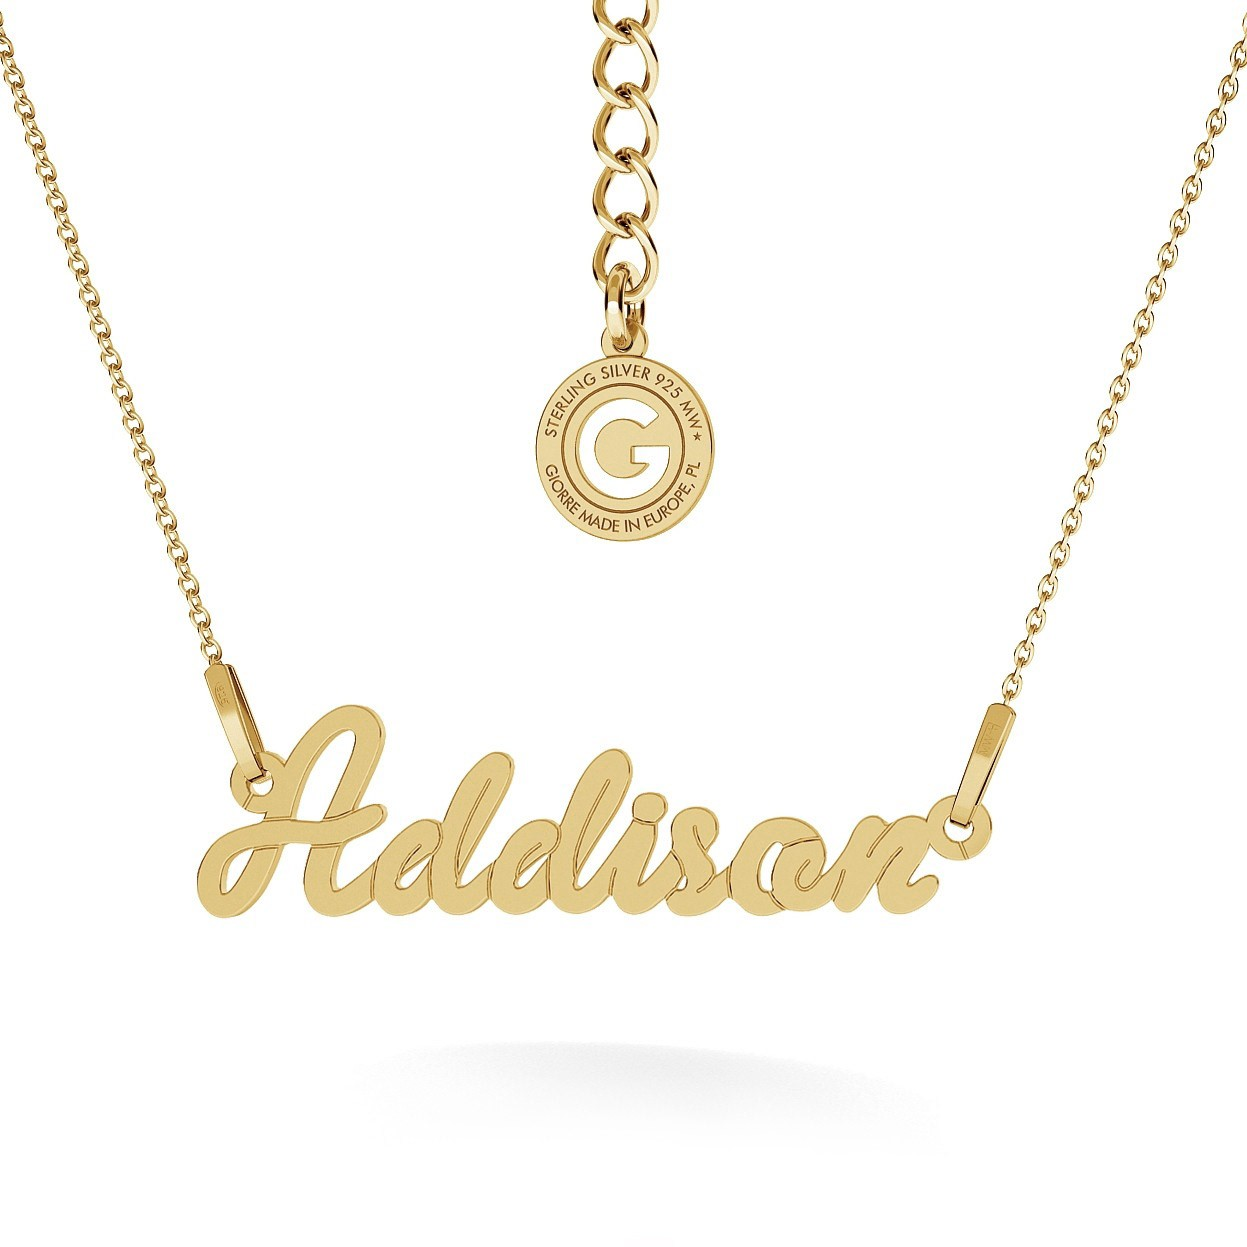 SIMPLE STYLE NAME NECKLACE, RHODIUM OR 24K / 18K GOLD PLATED